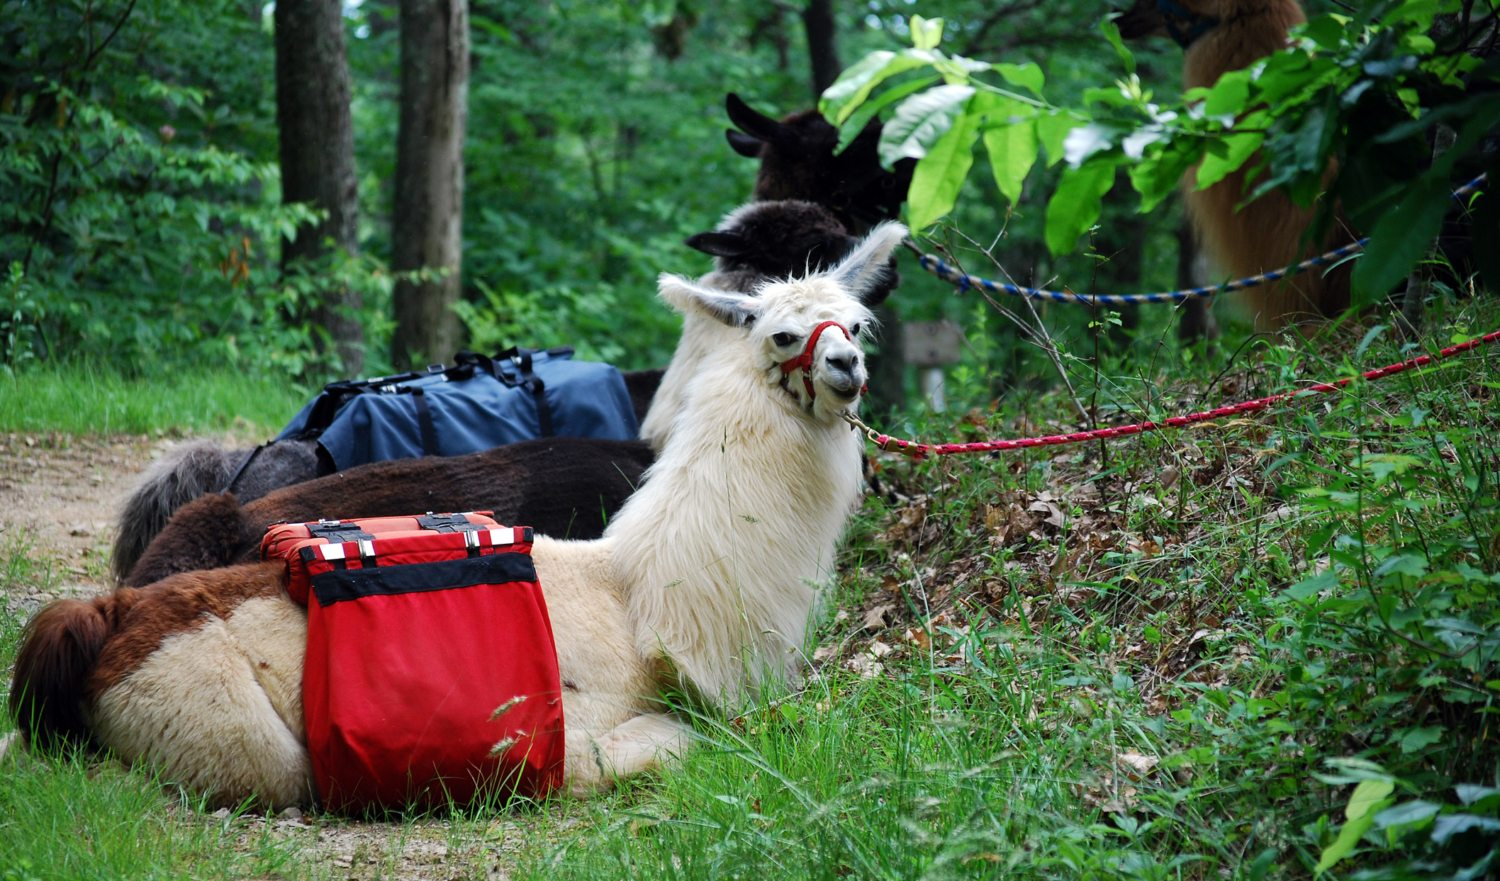 Three llamas wearing saddle bags. White llama in front in the focus.